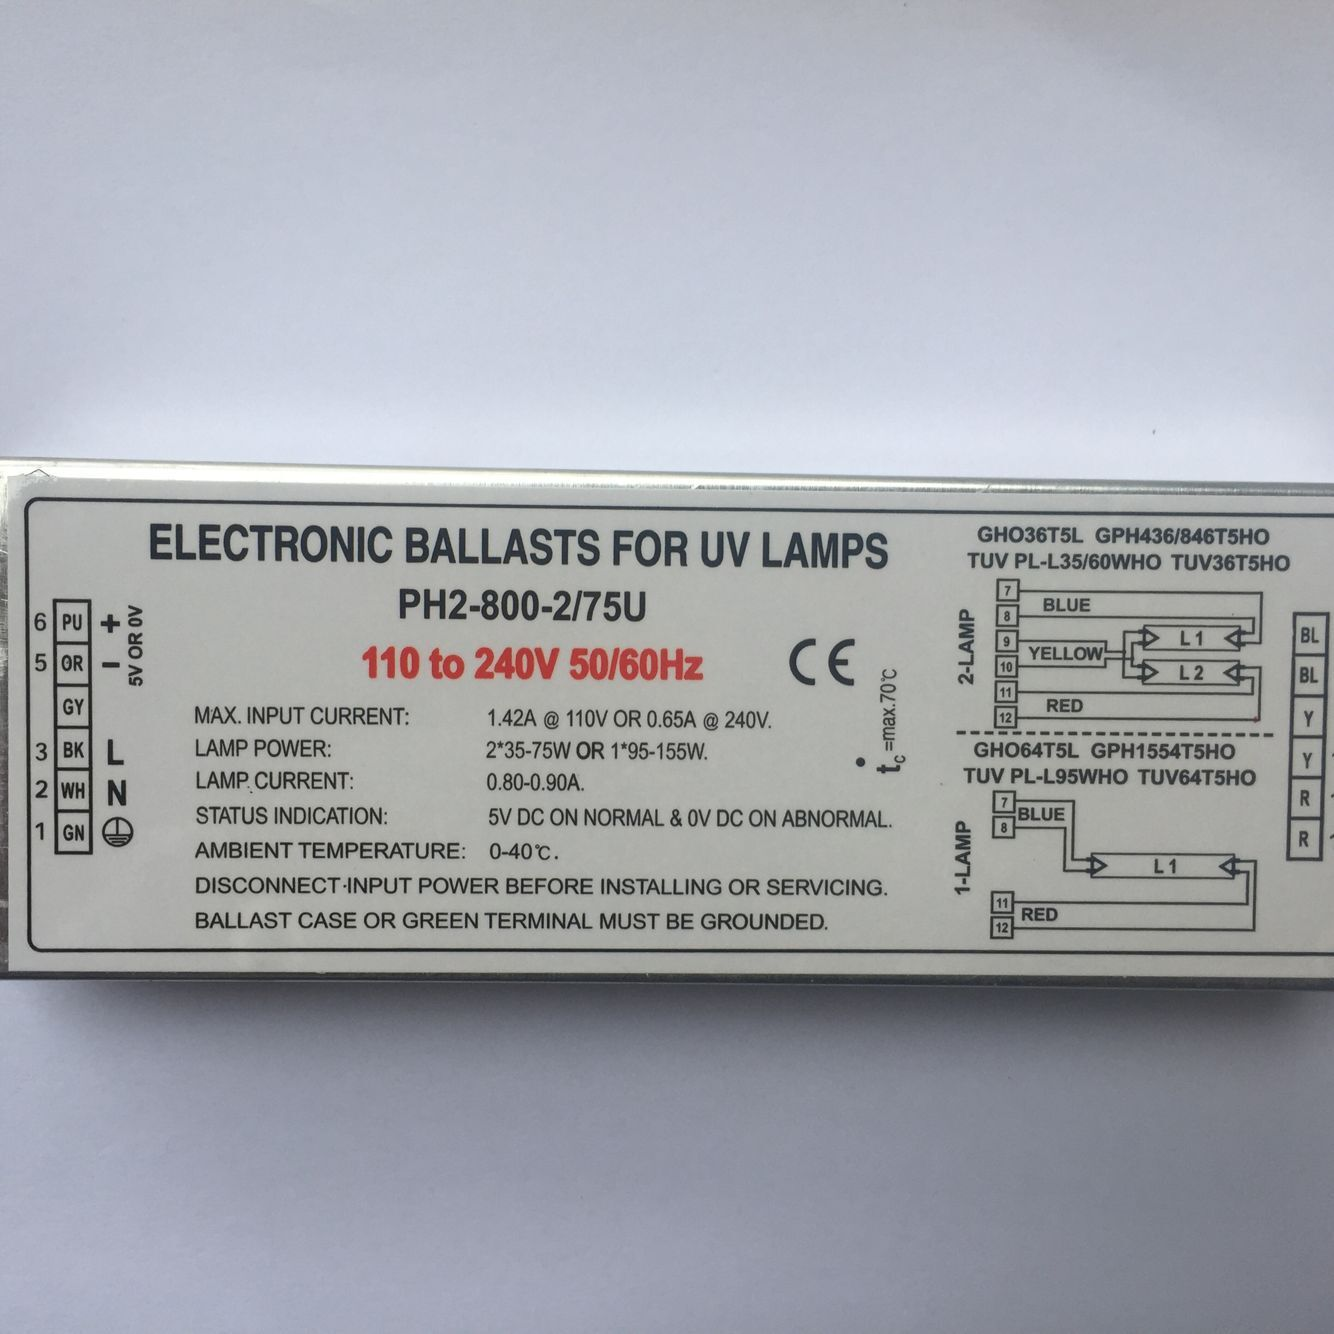 PH12-230-800-2/75 Germicidal Lamp Electronic Ballasts For UV Lamp GHO36T5L GPH436/846T5HO TUV PL-L35/60WHO TUV36T5HO